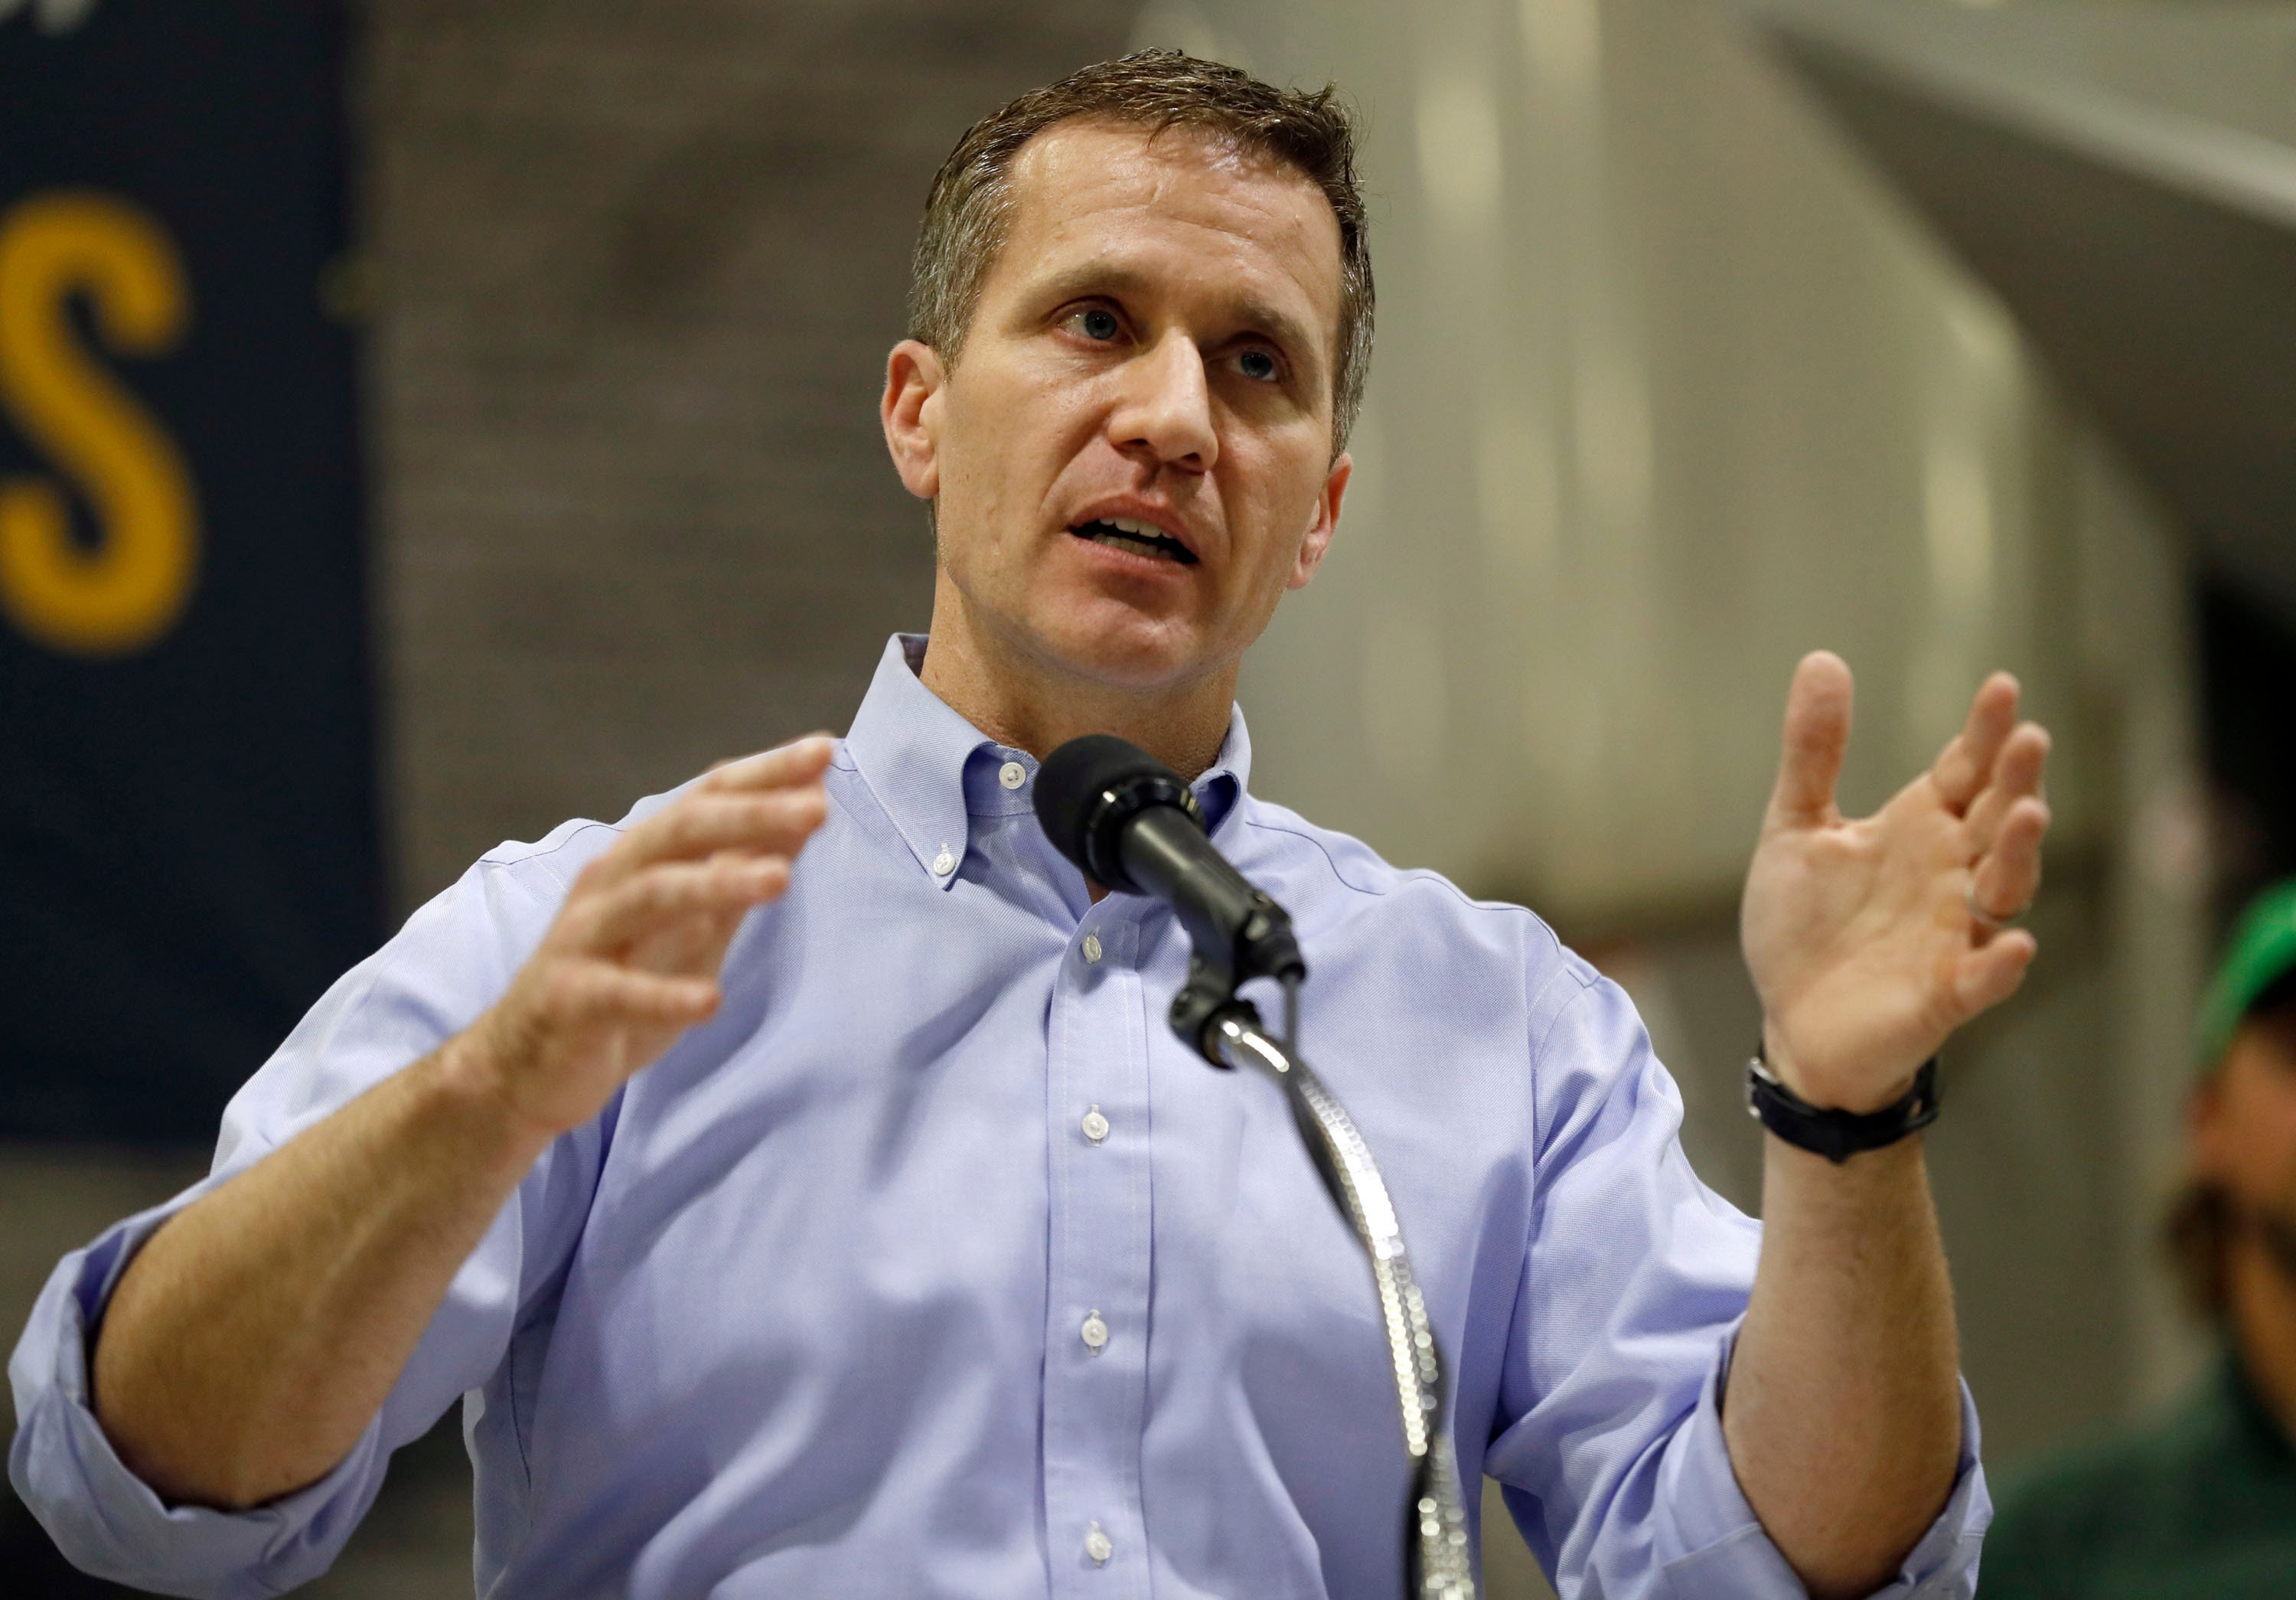 Missouri governor accused of blackmailing mistress indicted